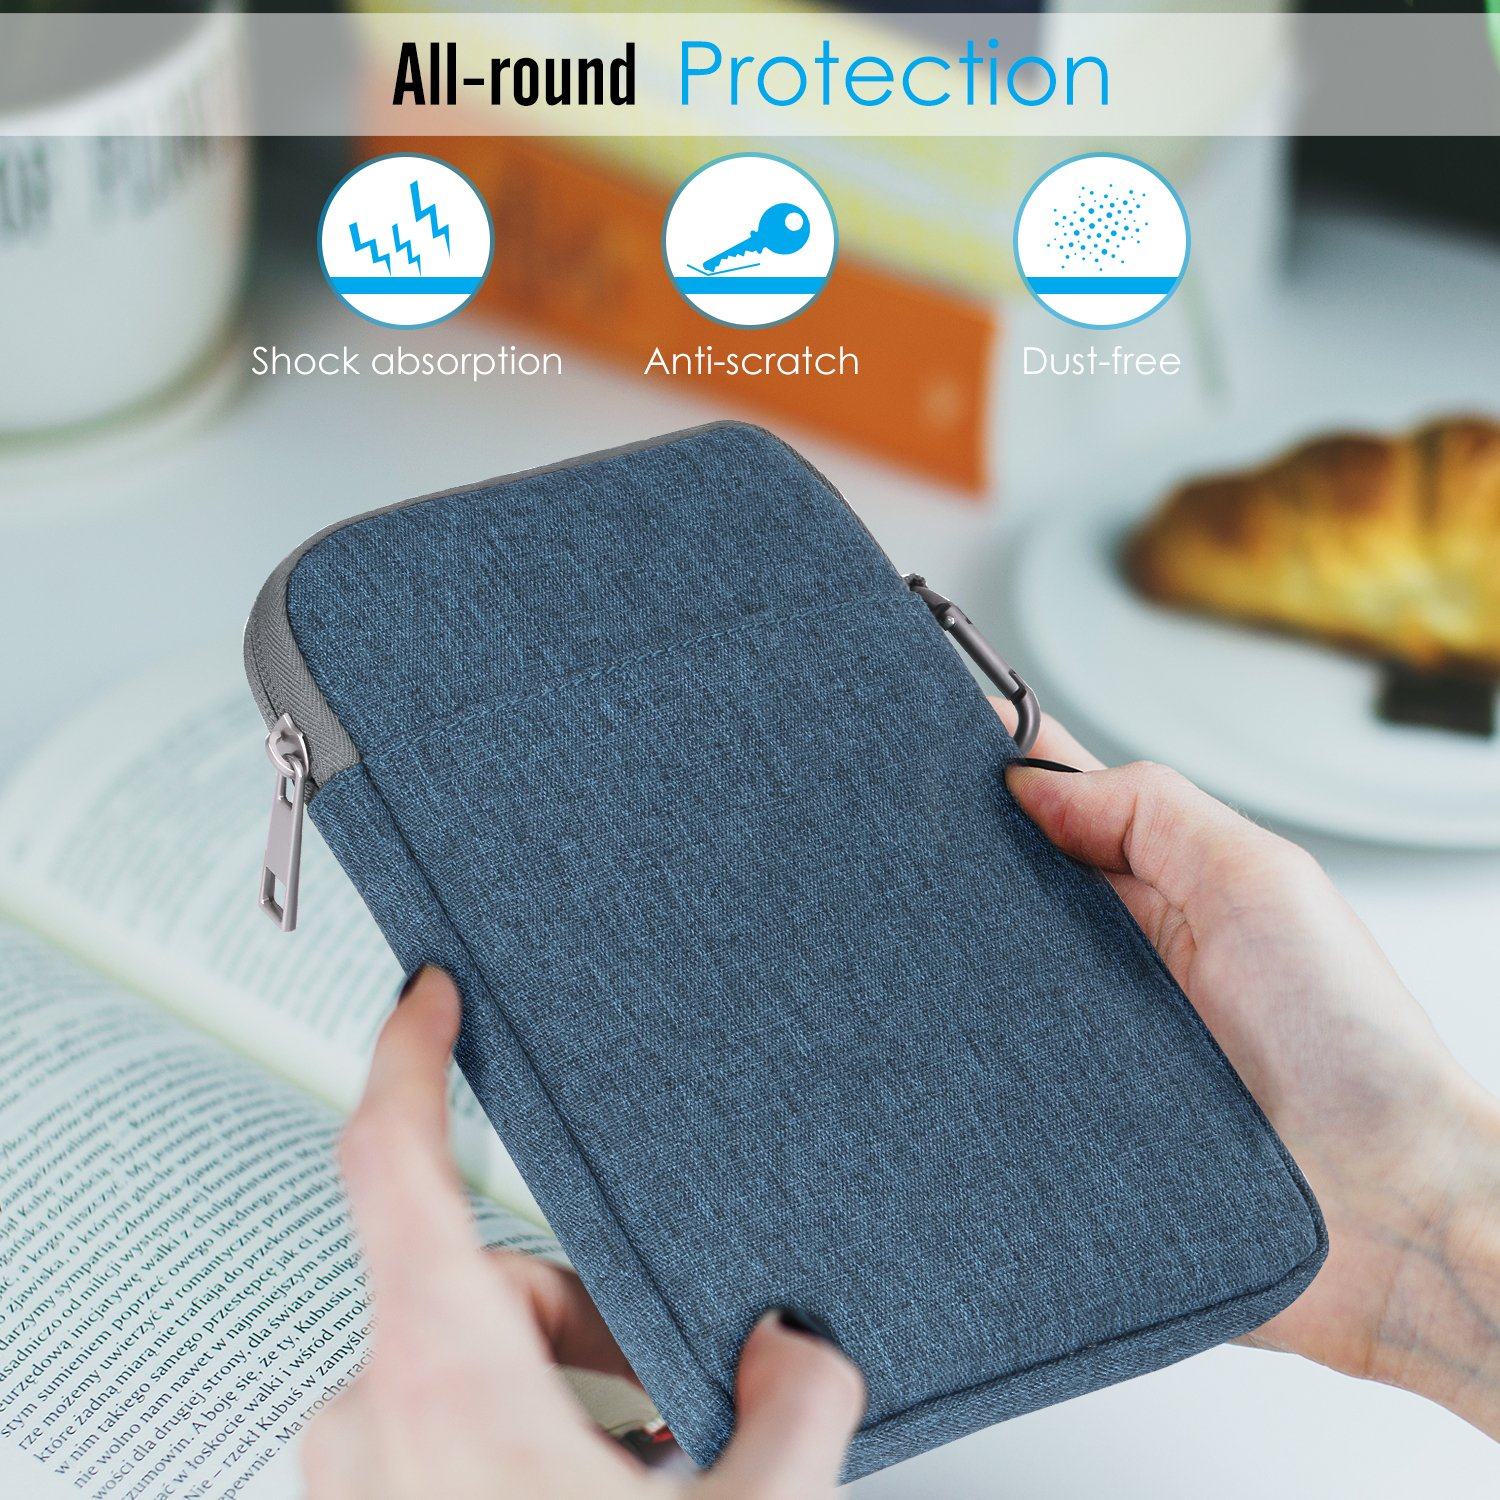 MoKo 6 Inch Kindle Sleeve Case Fits for All-New Kindle 10th Generation 2019//Kindle Paperwhite 2018 //Kindle Oasis 6 E-Reader Nylon Cover Pouch Bag for Kindle Voyage//Kindle 8th Gen, 2016 Dark Gray